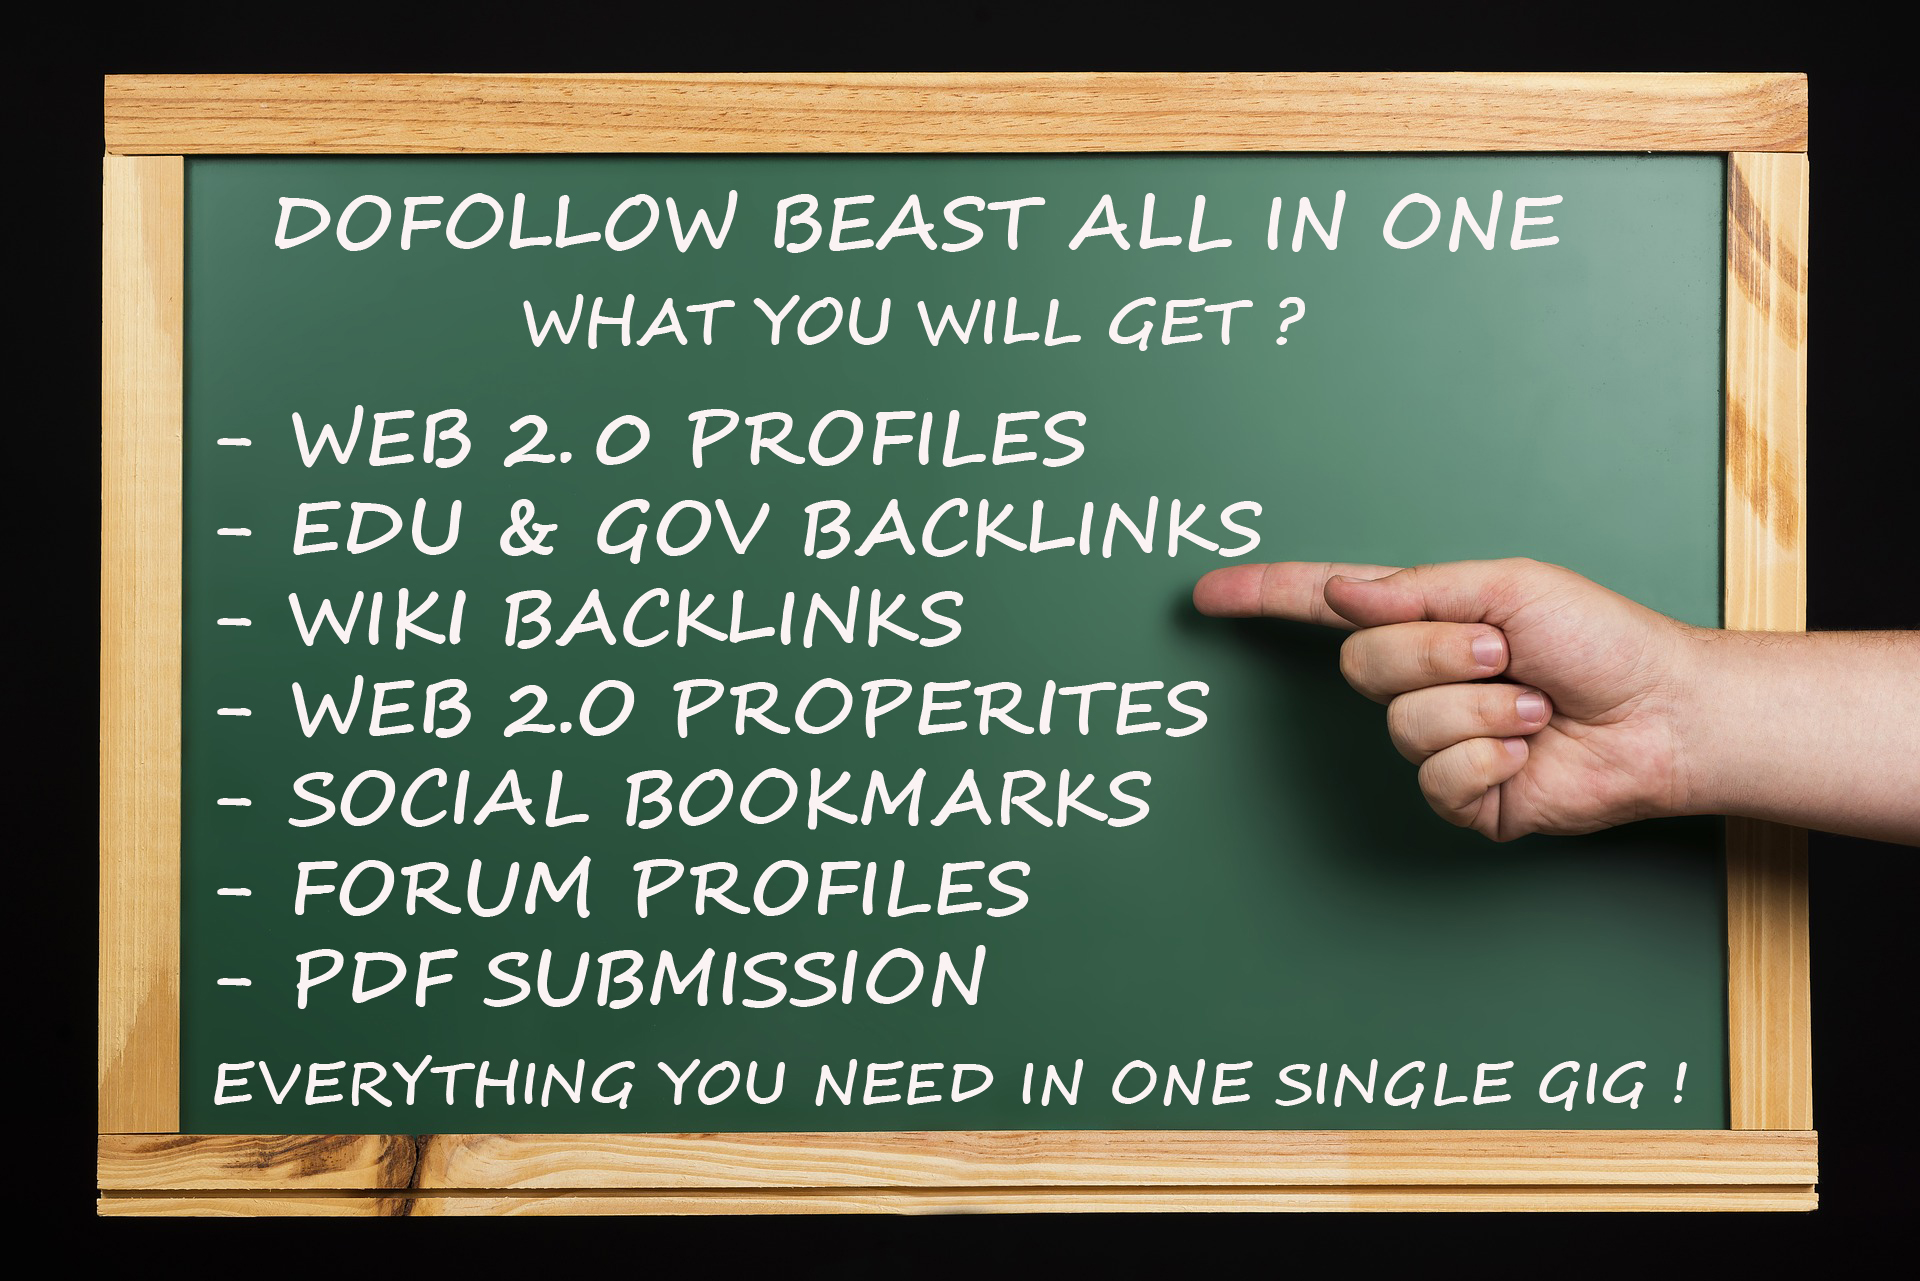 DOFOLLOW BEAST - ALL IN ONE ULTIMATE HIGH QUALITY SEO PACKAGE